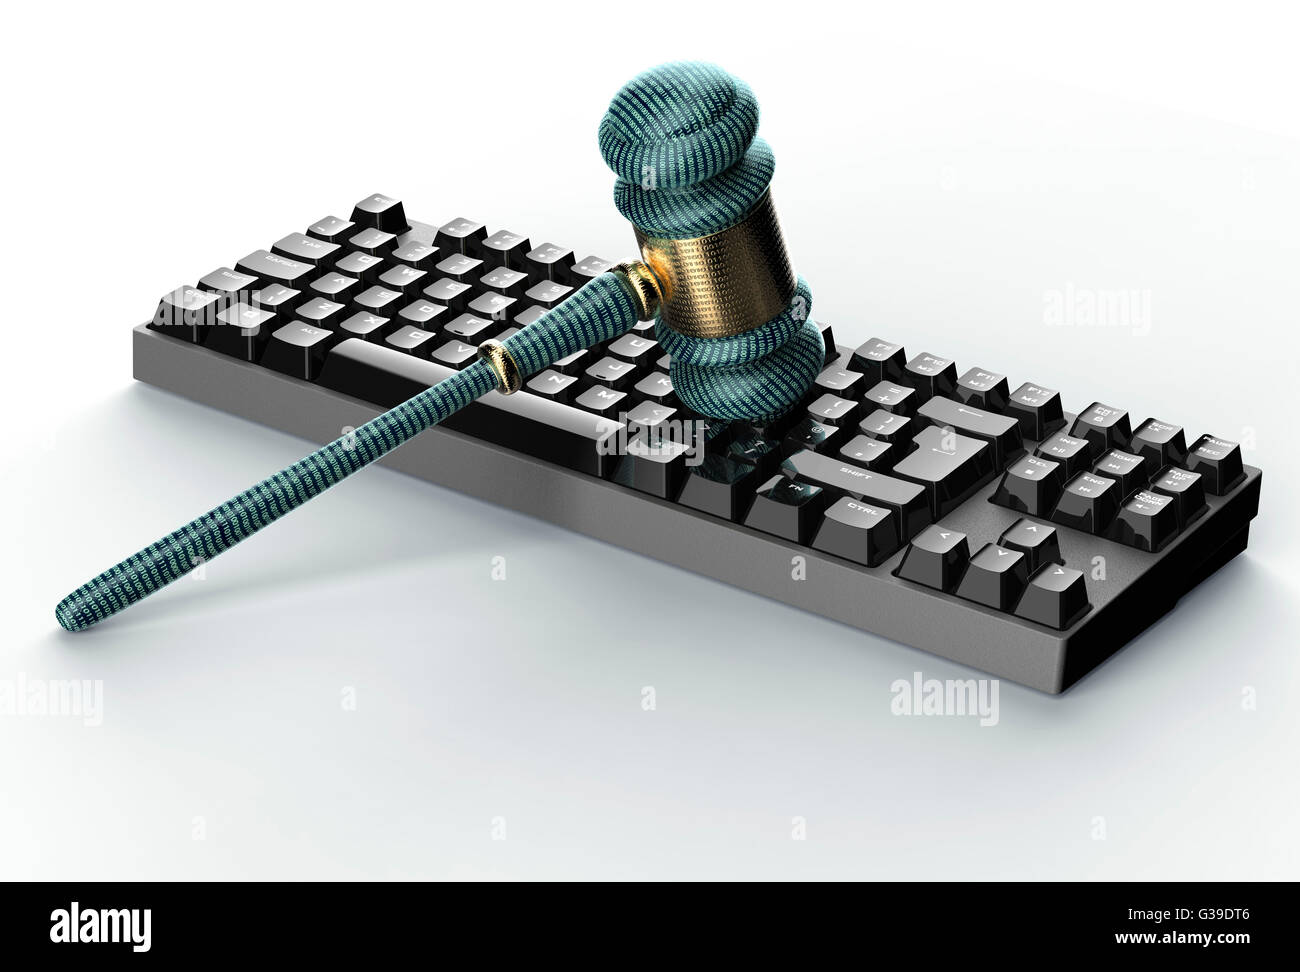 legal computer judge concept, cyber gavel on computer keyboard,3D illustration - Stock Image